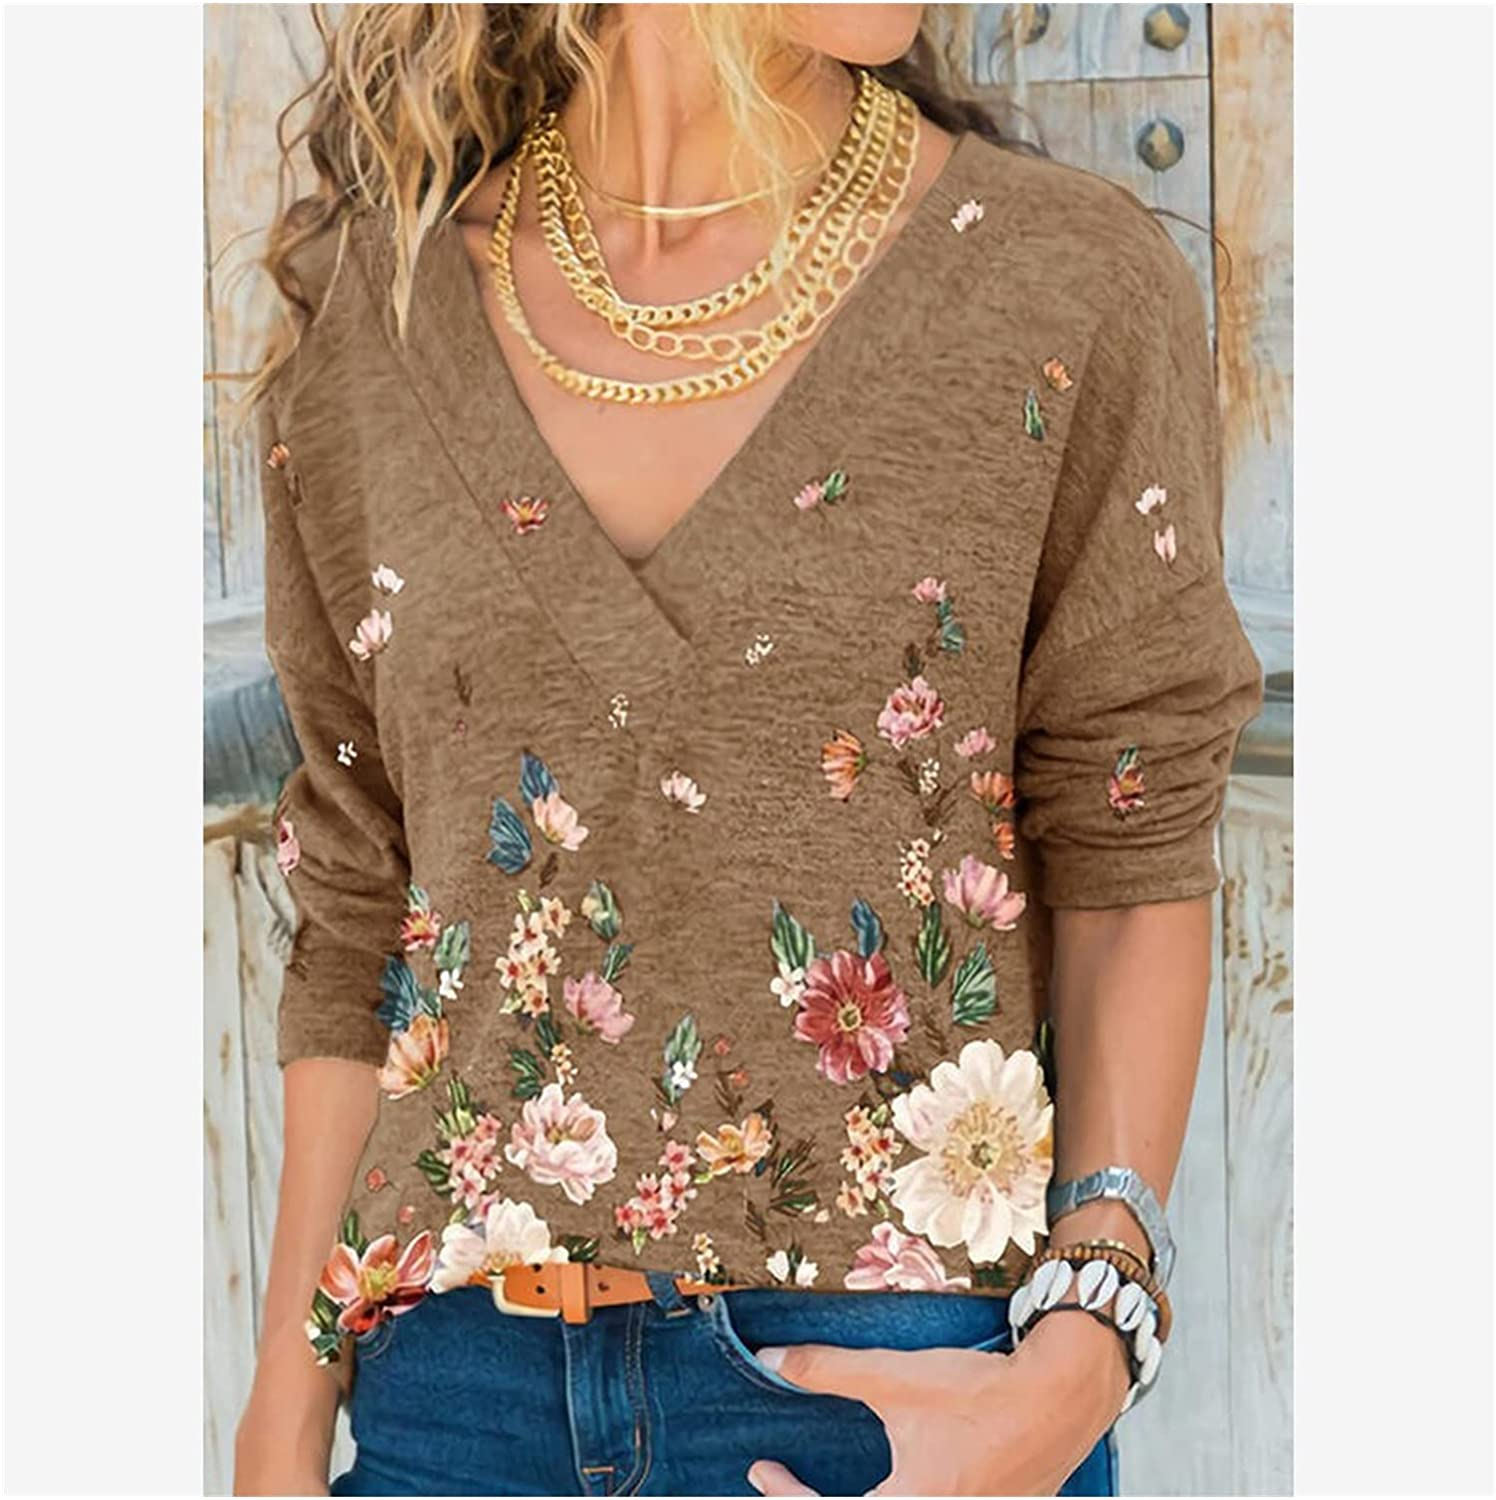 Women's Long-Sleeved T-Shirt Clothing Winter and Classic Branded goods Autumn